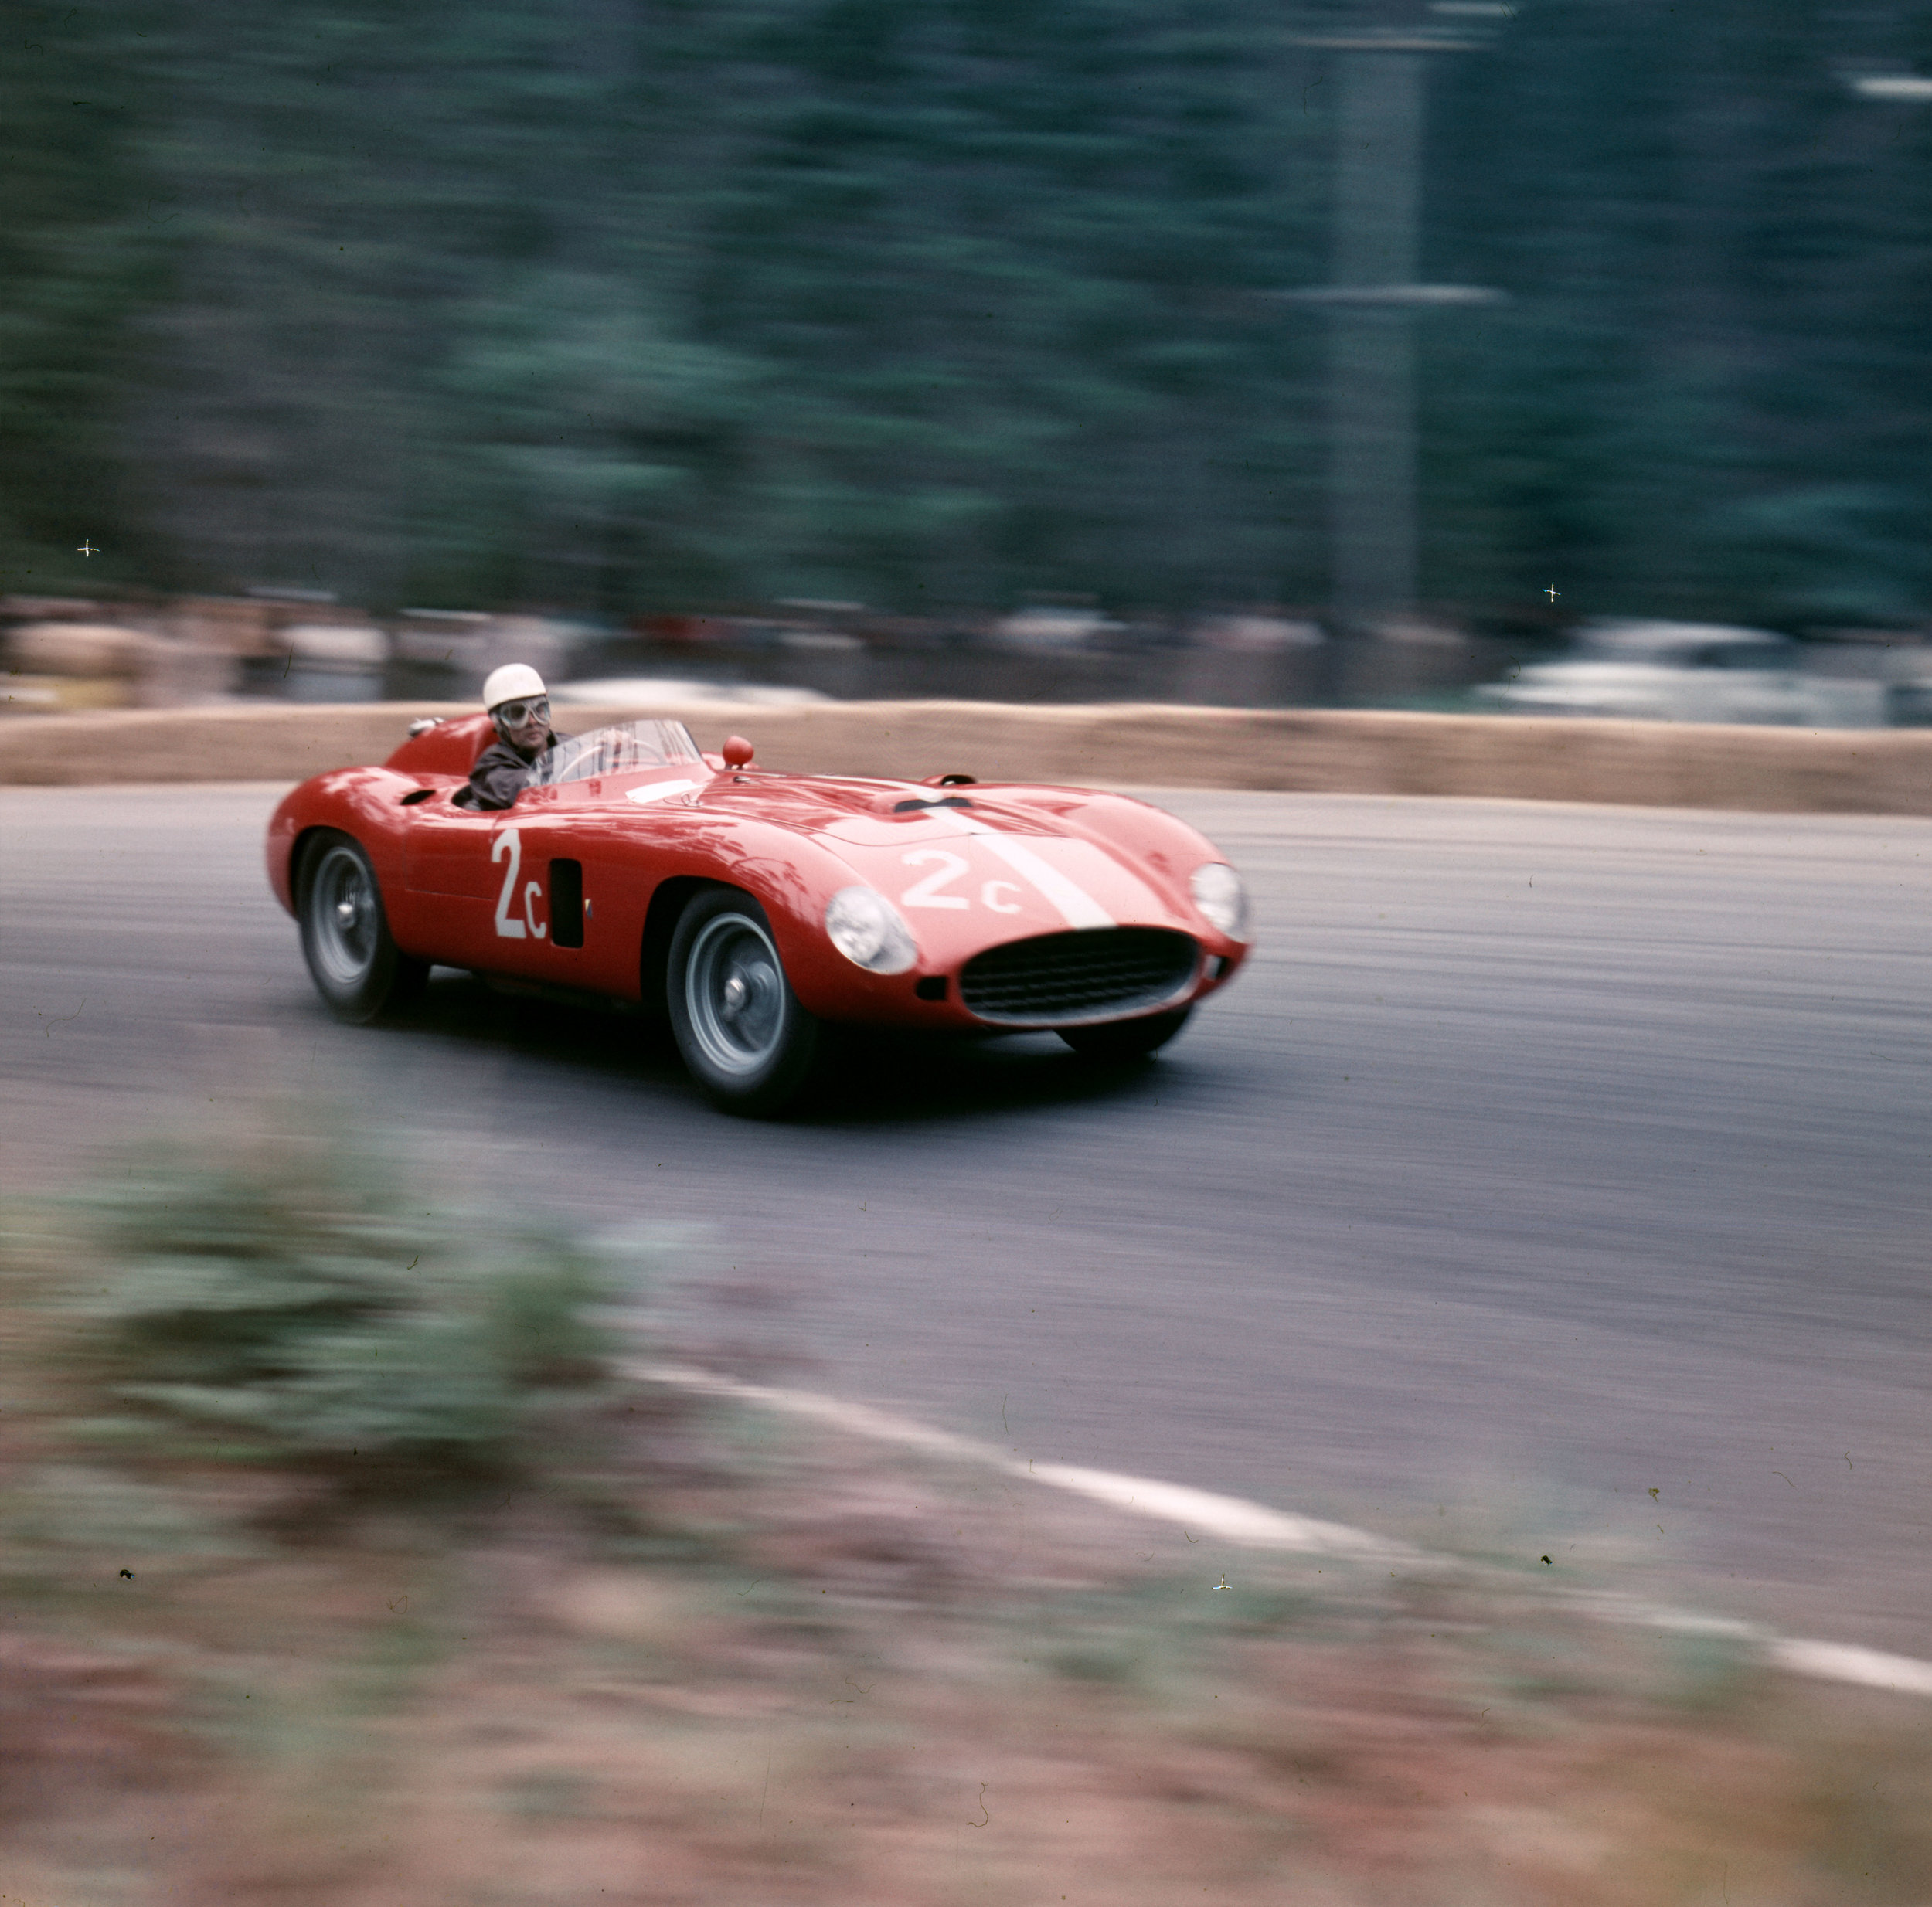 Phil Hill on track   Pebble Beach, April 1956: Phil Hill showing a little oversteer in the 860 Monza of Ferrari west coast distributor John von Neumann. He finished second to Shelby in the Del Monte trophy race.